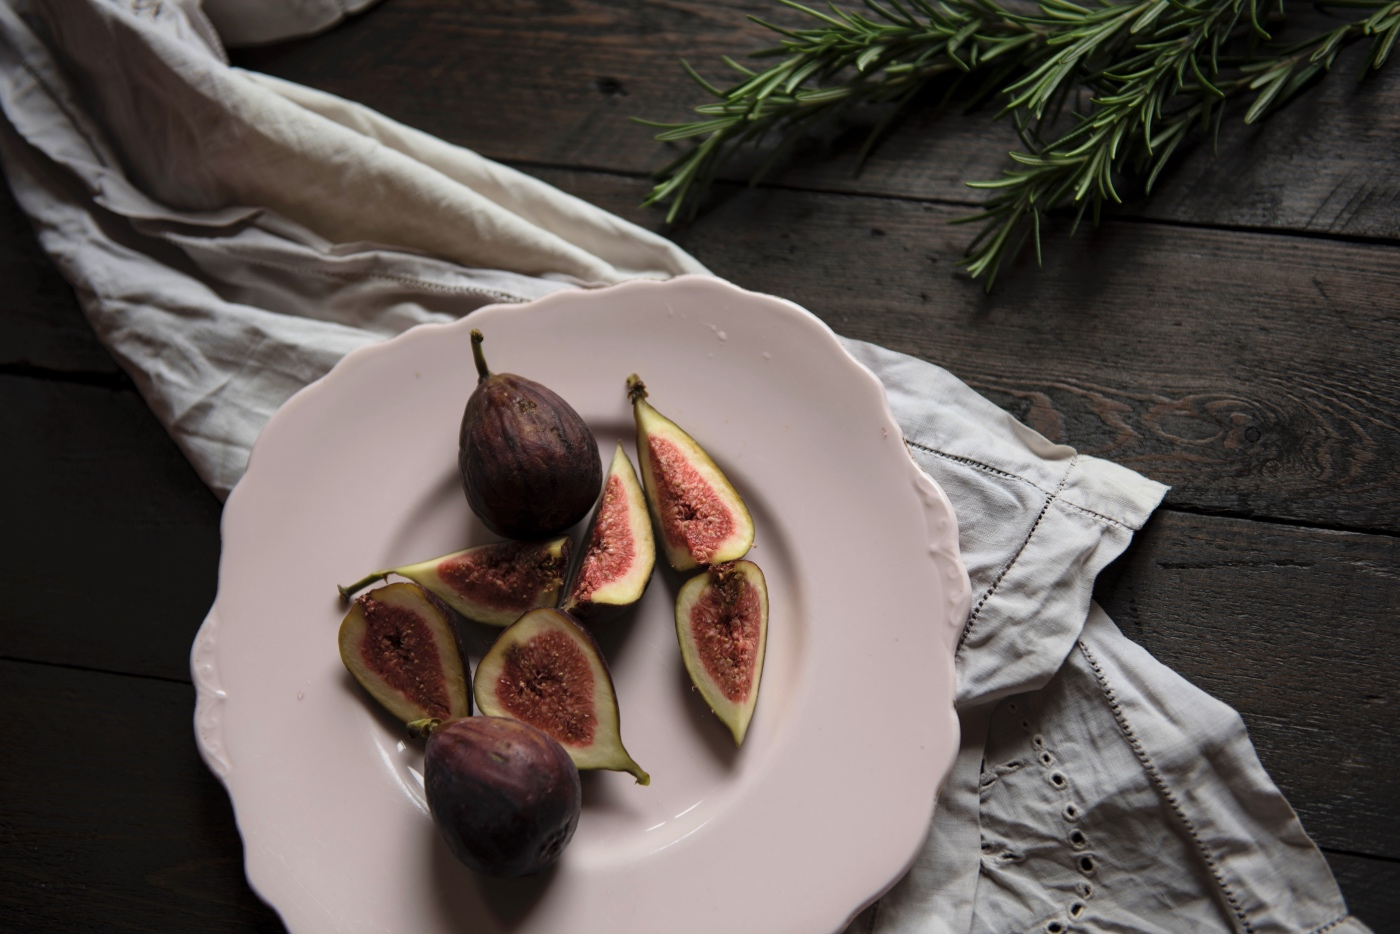 figs and rosemary for the rosemary olive oil cake pop shop america